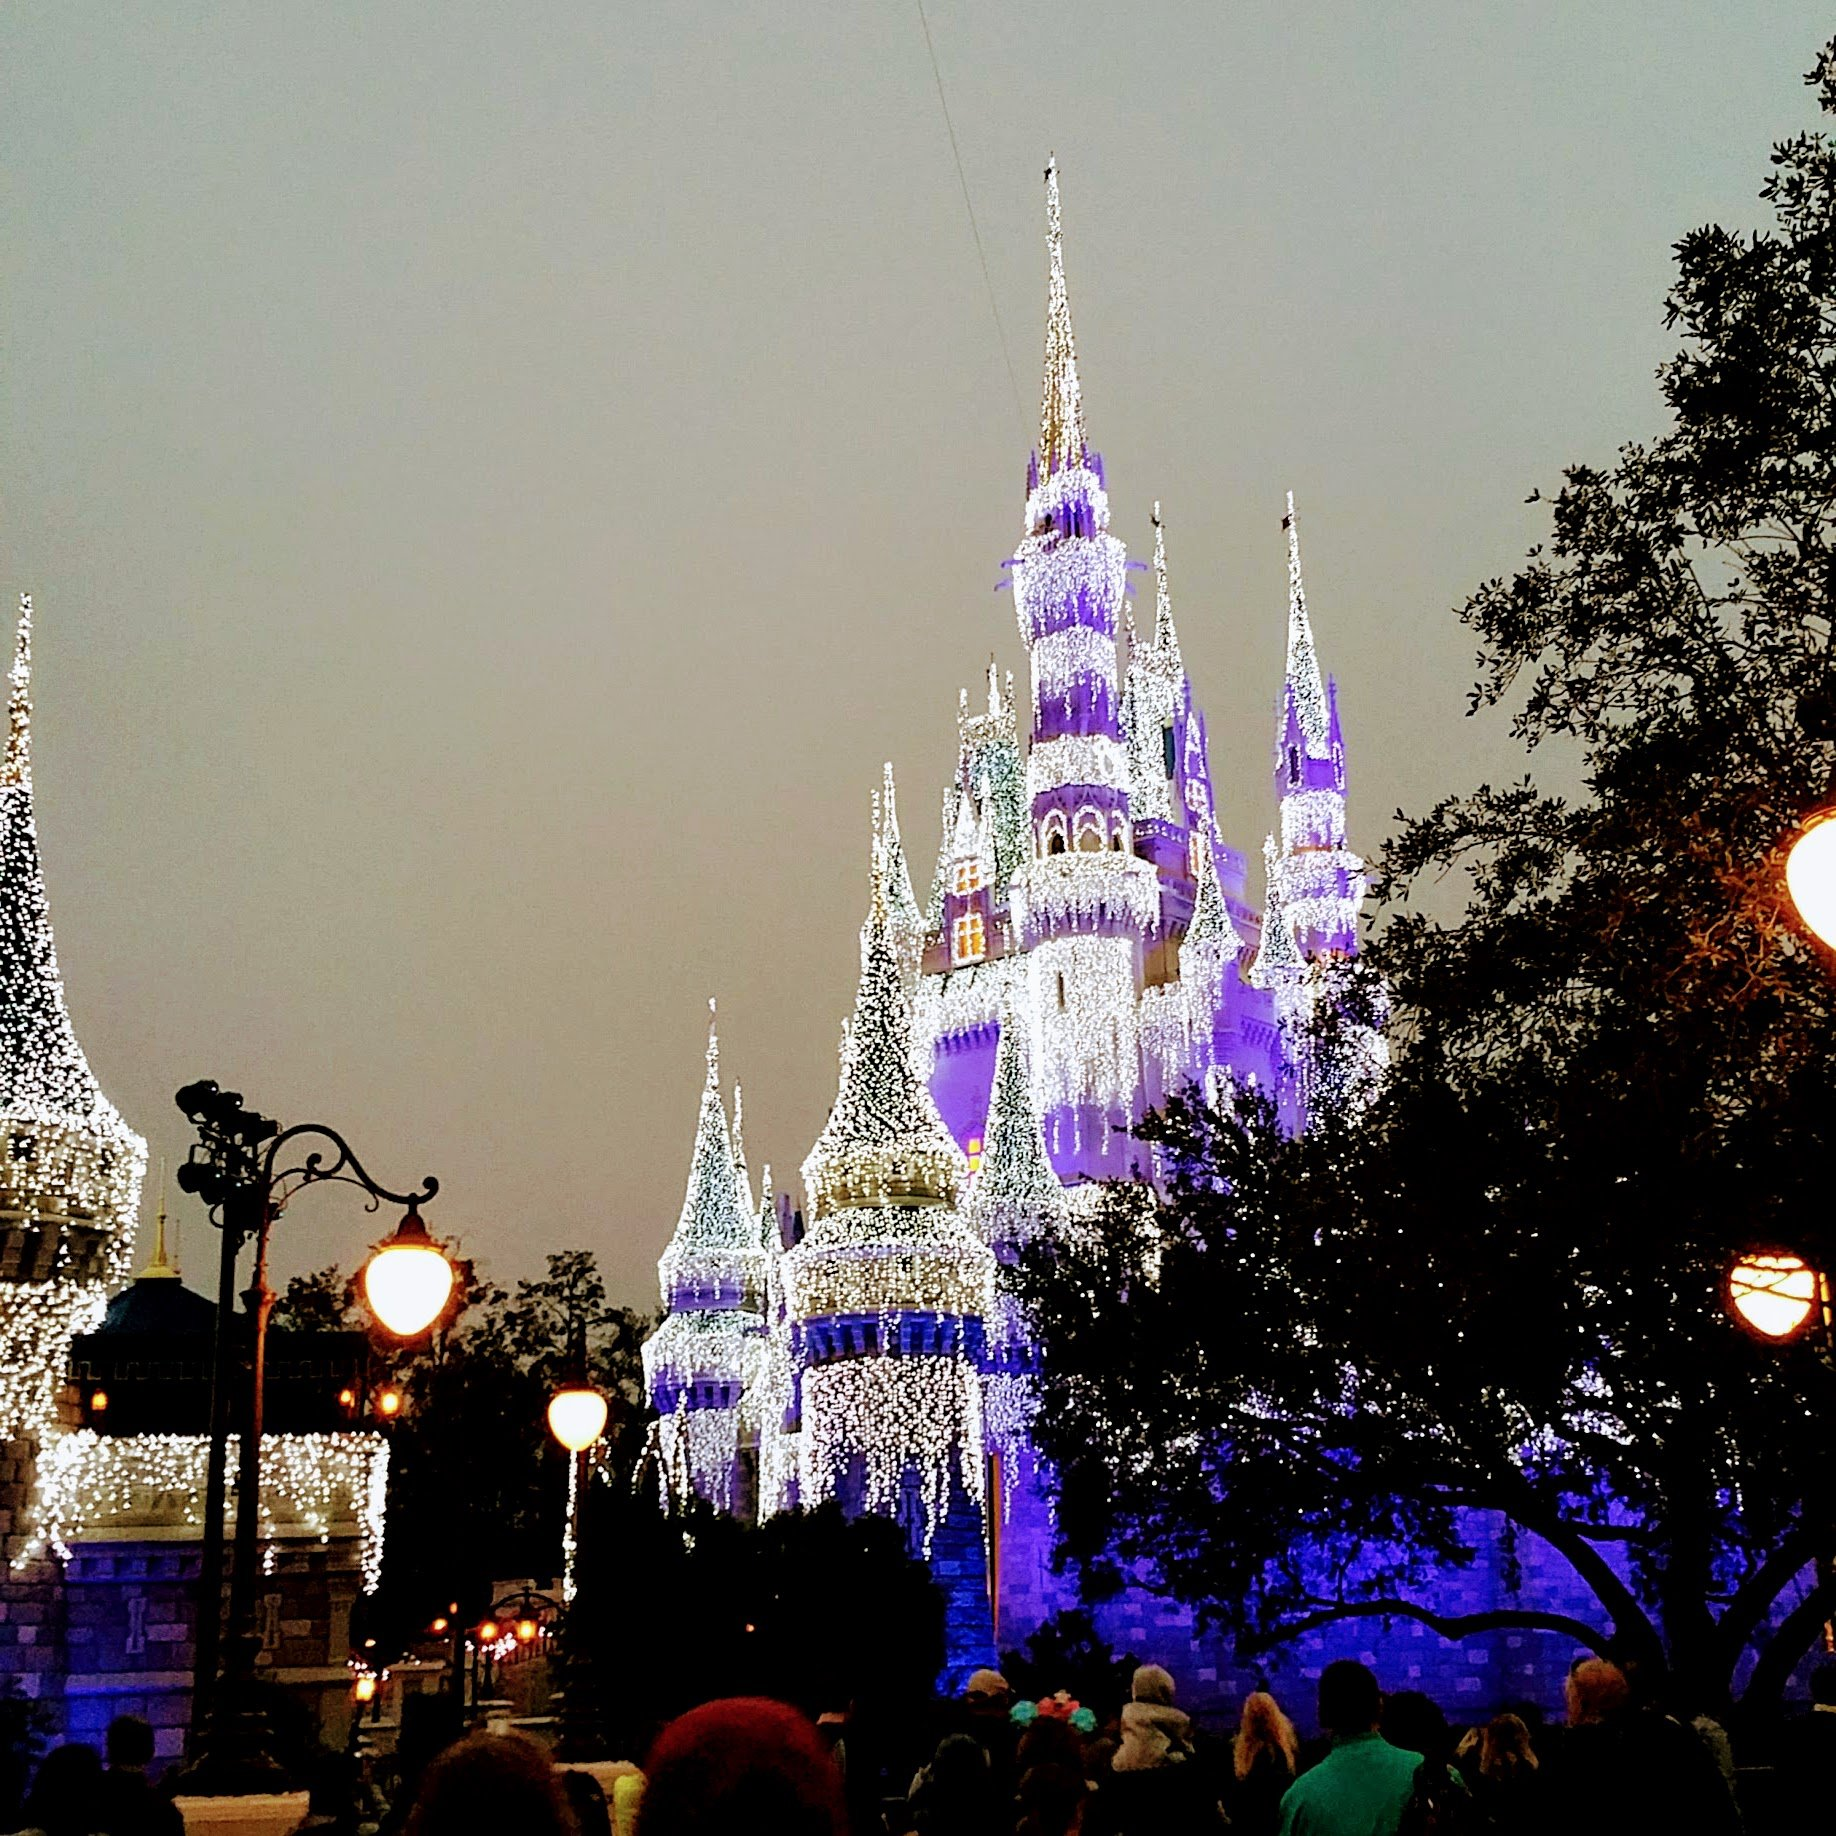 Cinderella's castle during the holidays